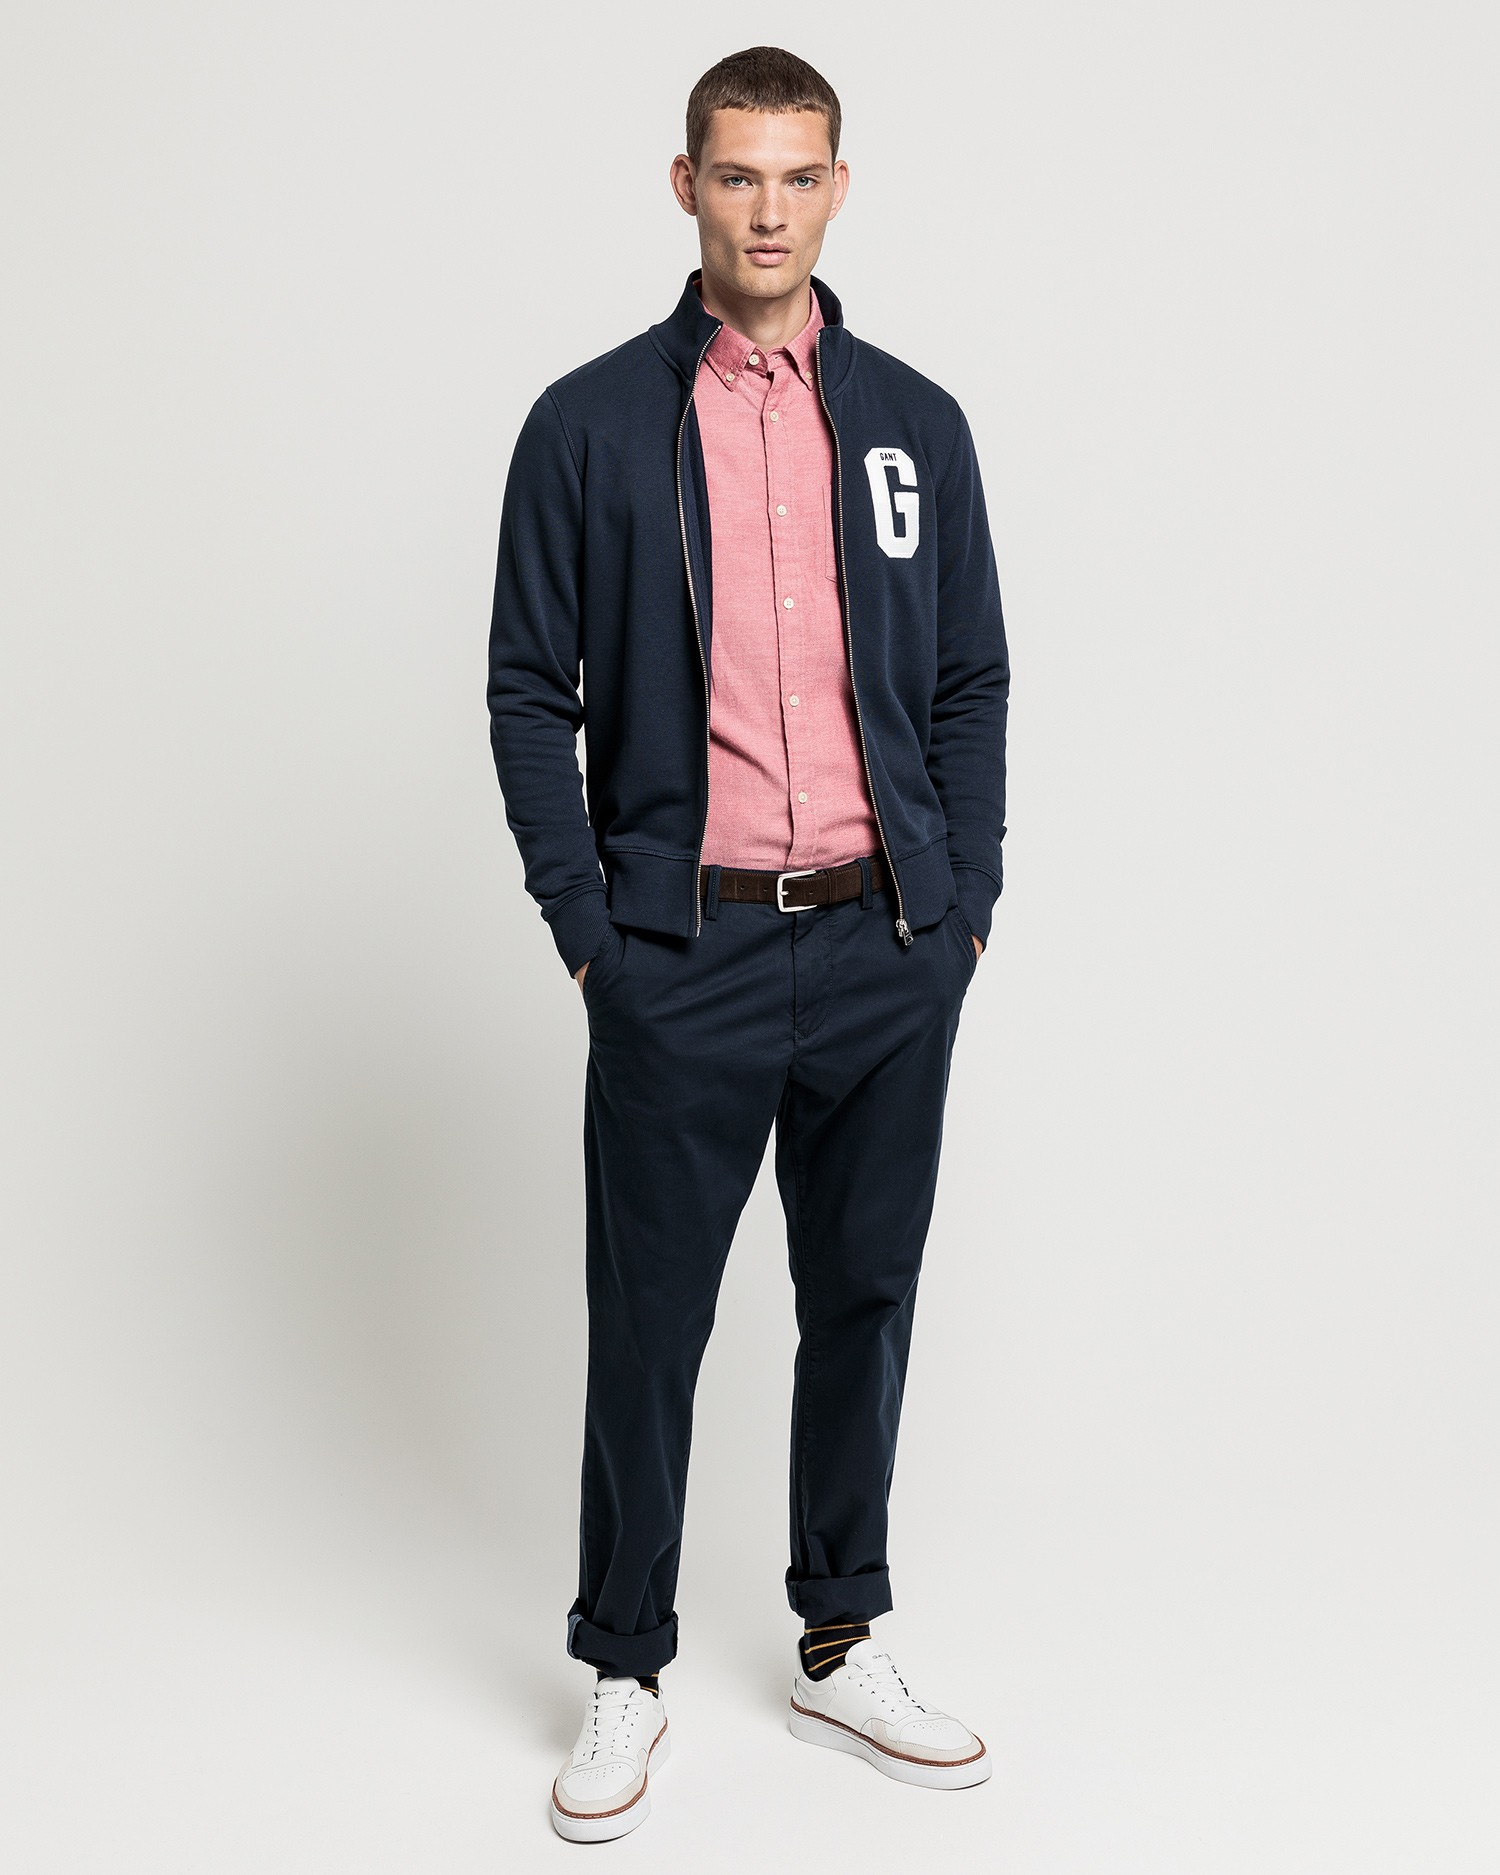 GANT Men's Sweatshirt - 2048042